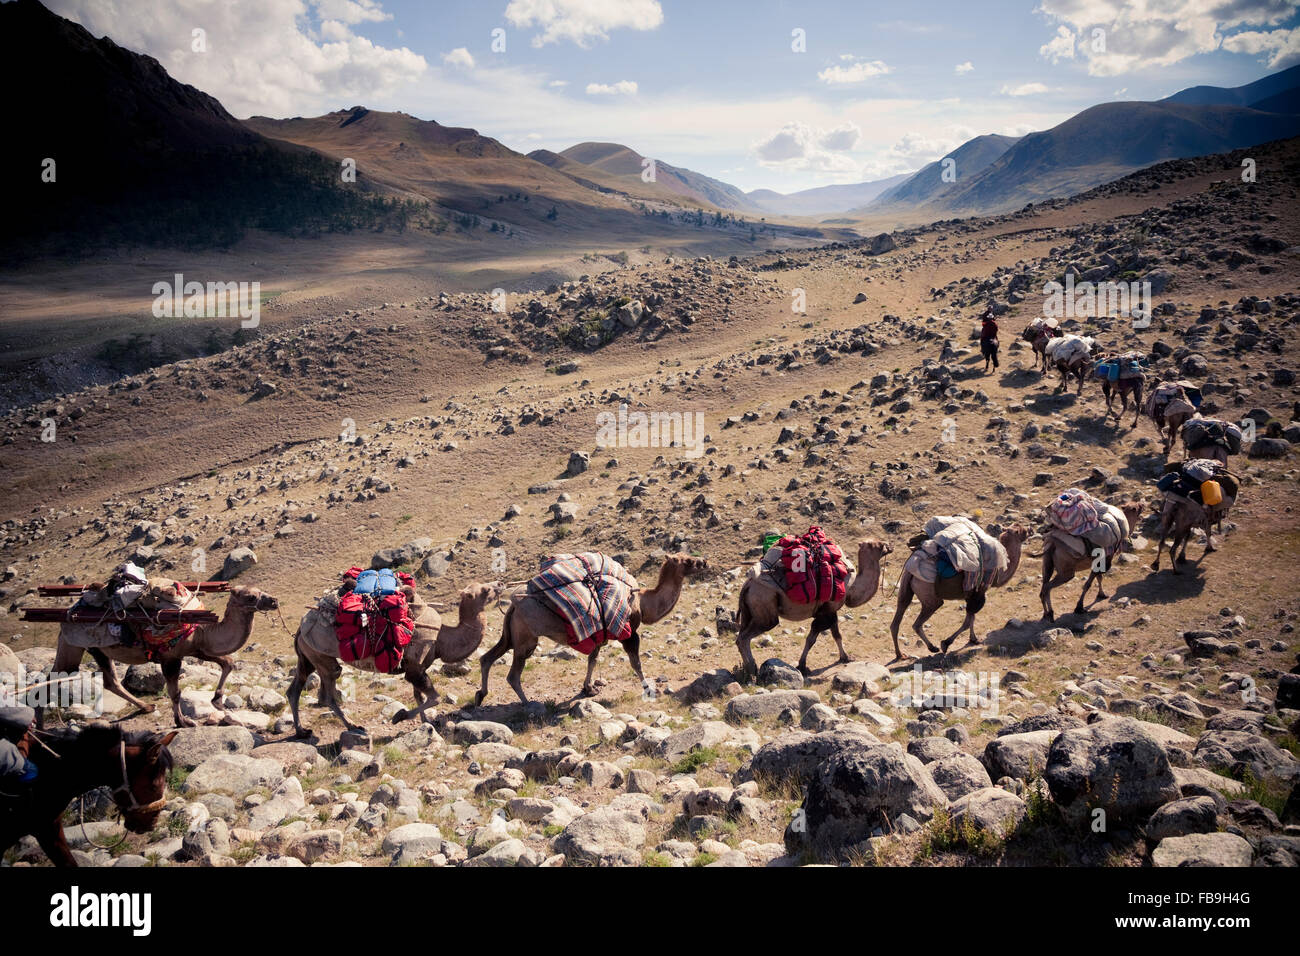 A camel train climbs Kharkhiraa Valley, Mongolia, where 3000 year-old Turkic stone piles mark the graves of ancient - Stock Image